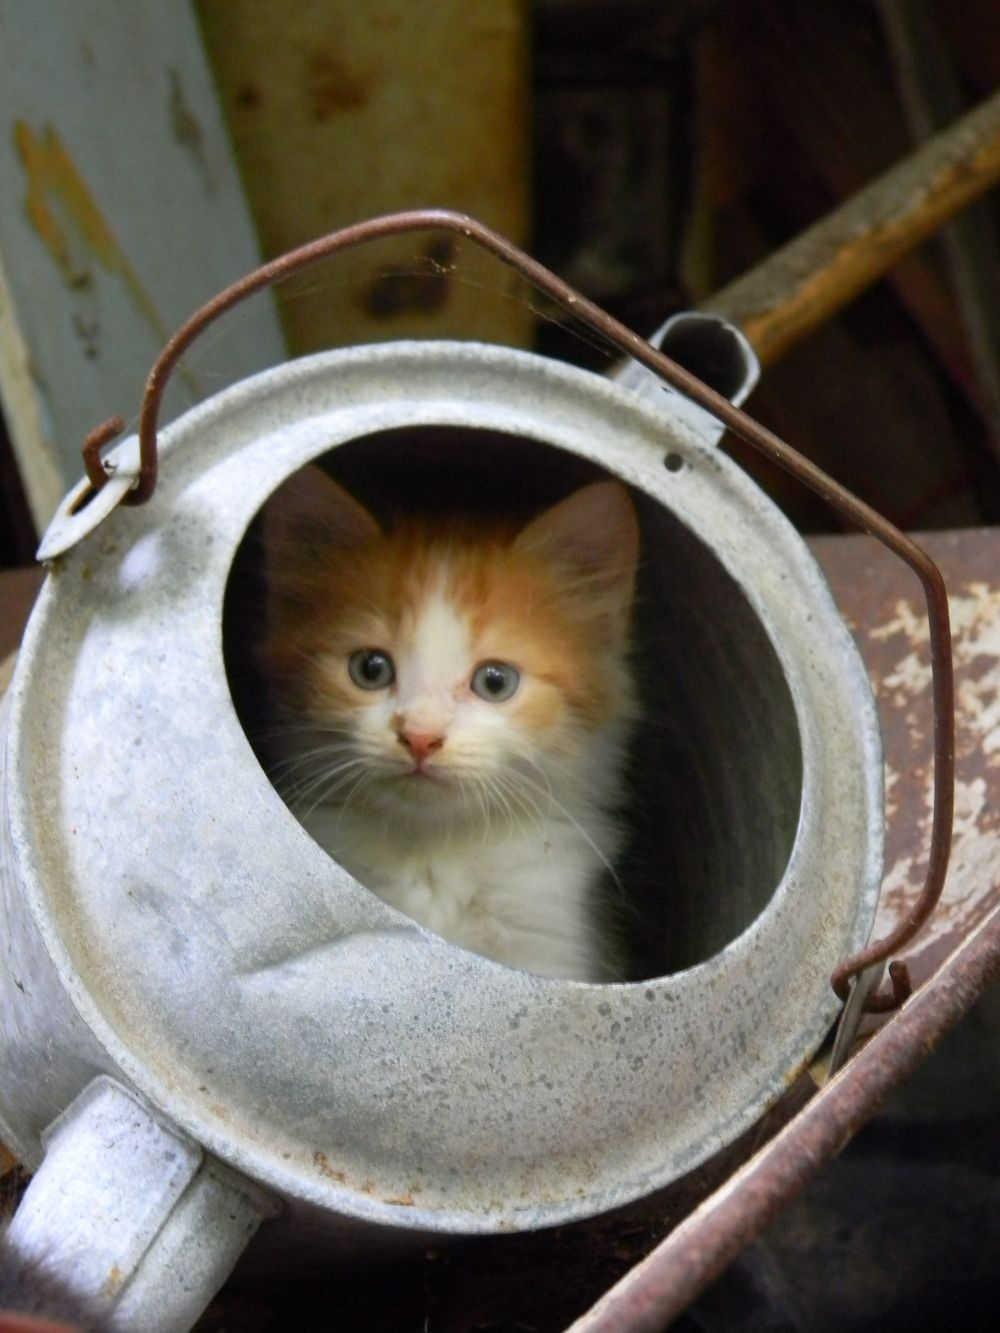 Old Watering Can...with a country kitty. GIVE THEM A BOX